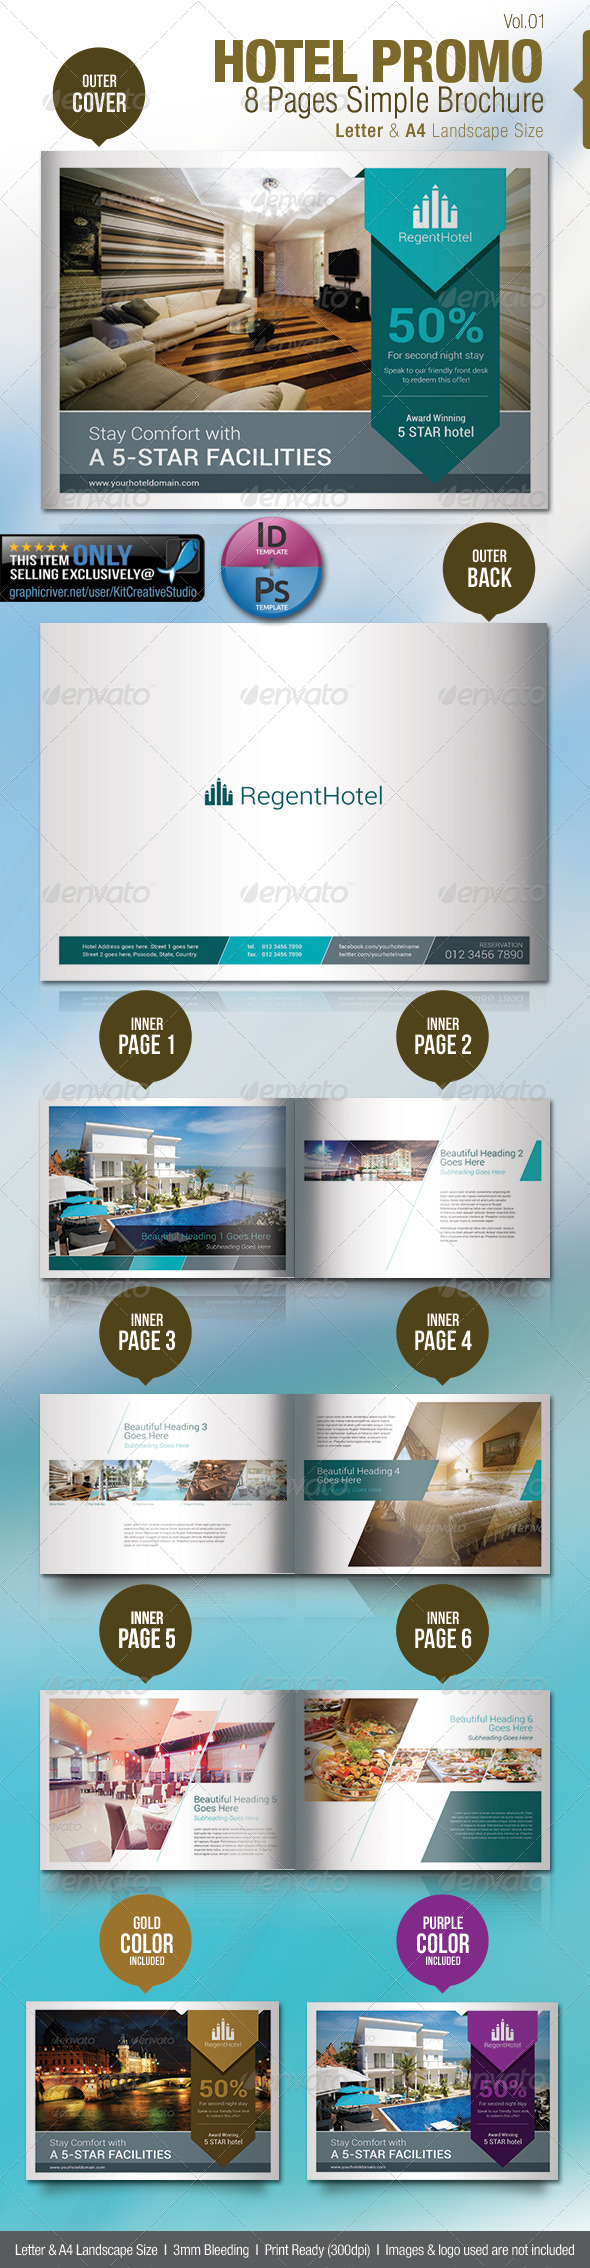 GraphicRiver Hotel Promo 8 Pages Simple Brochure 5365431